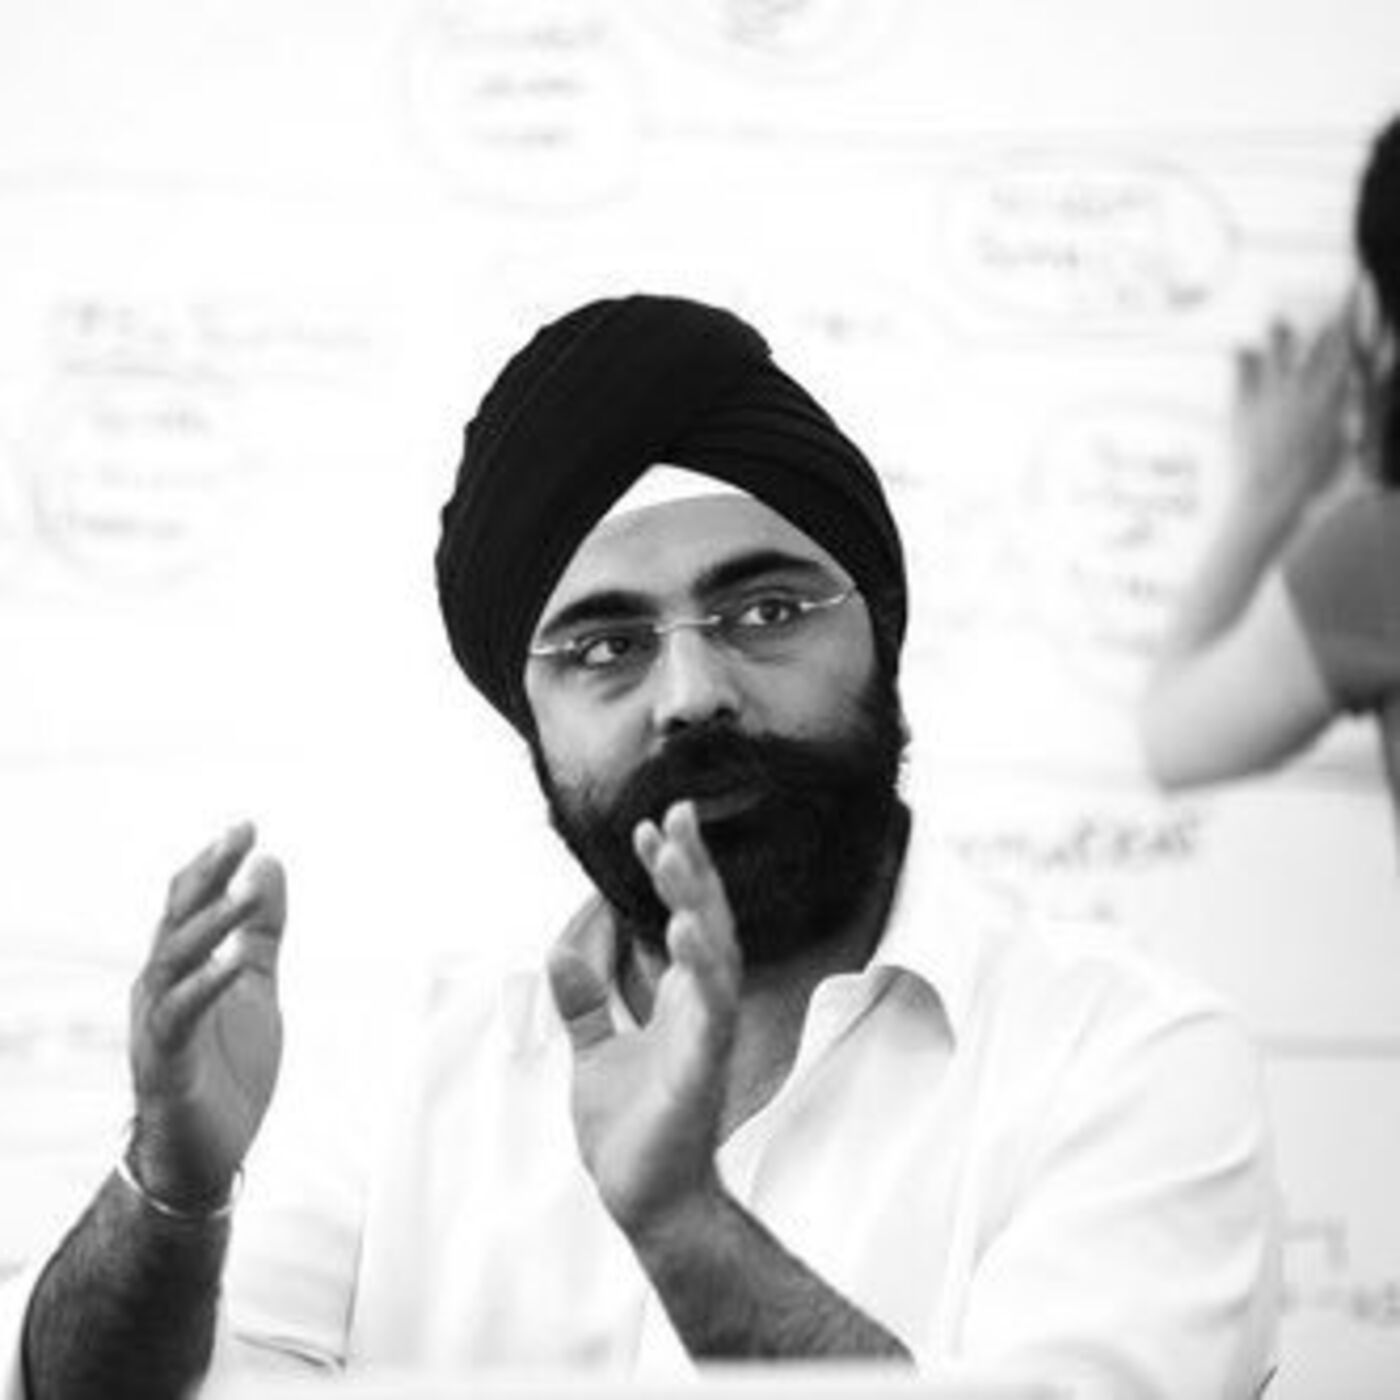 Indy Johar | The Great Rotation and the Built Environment